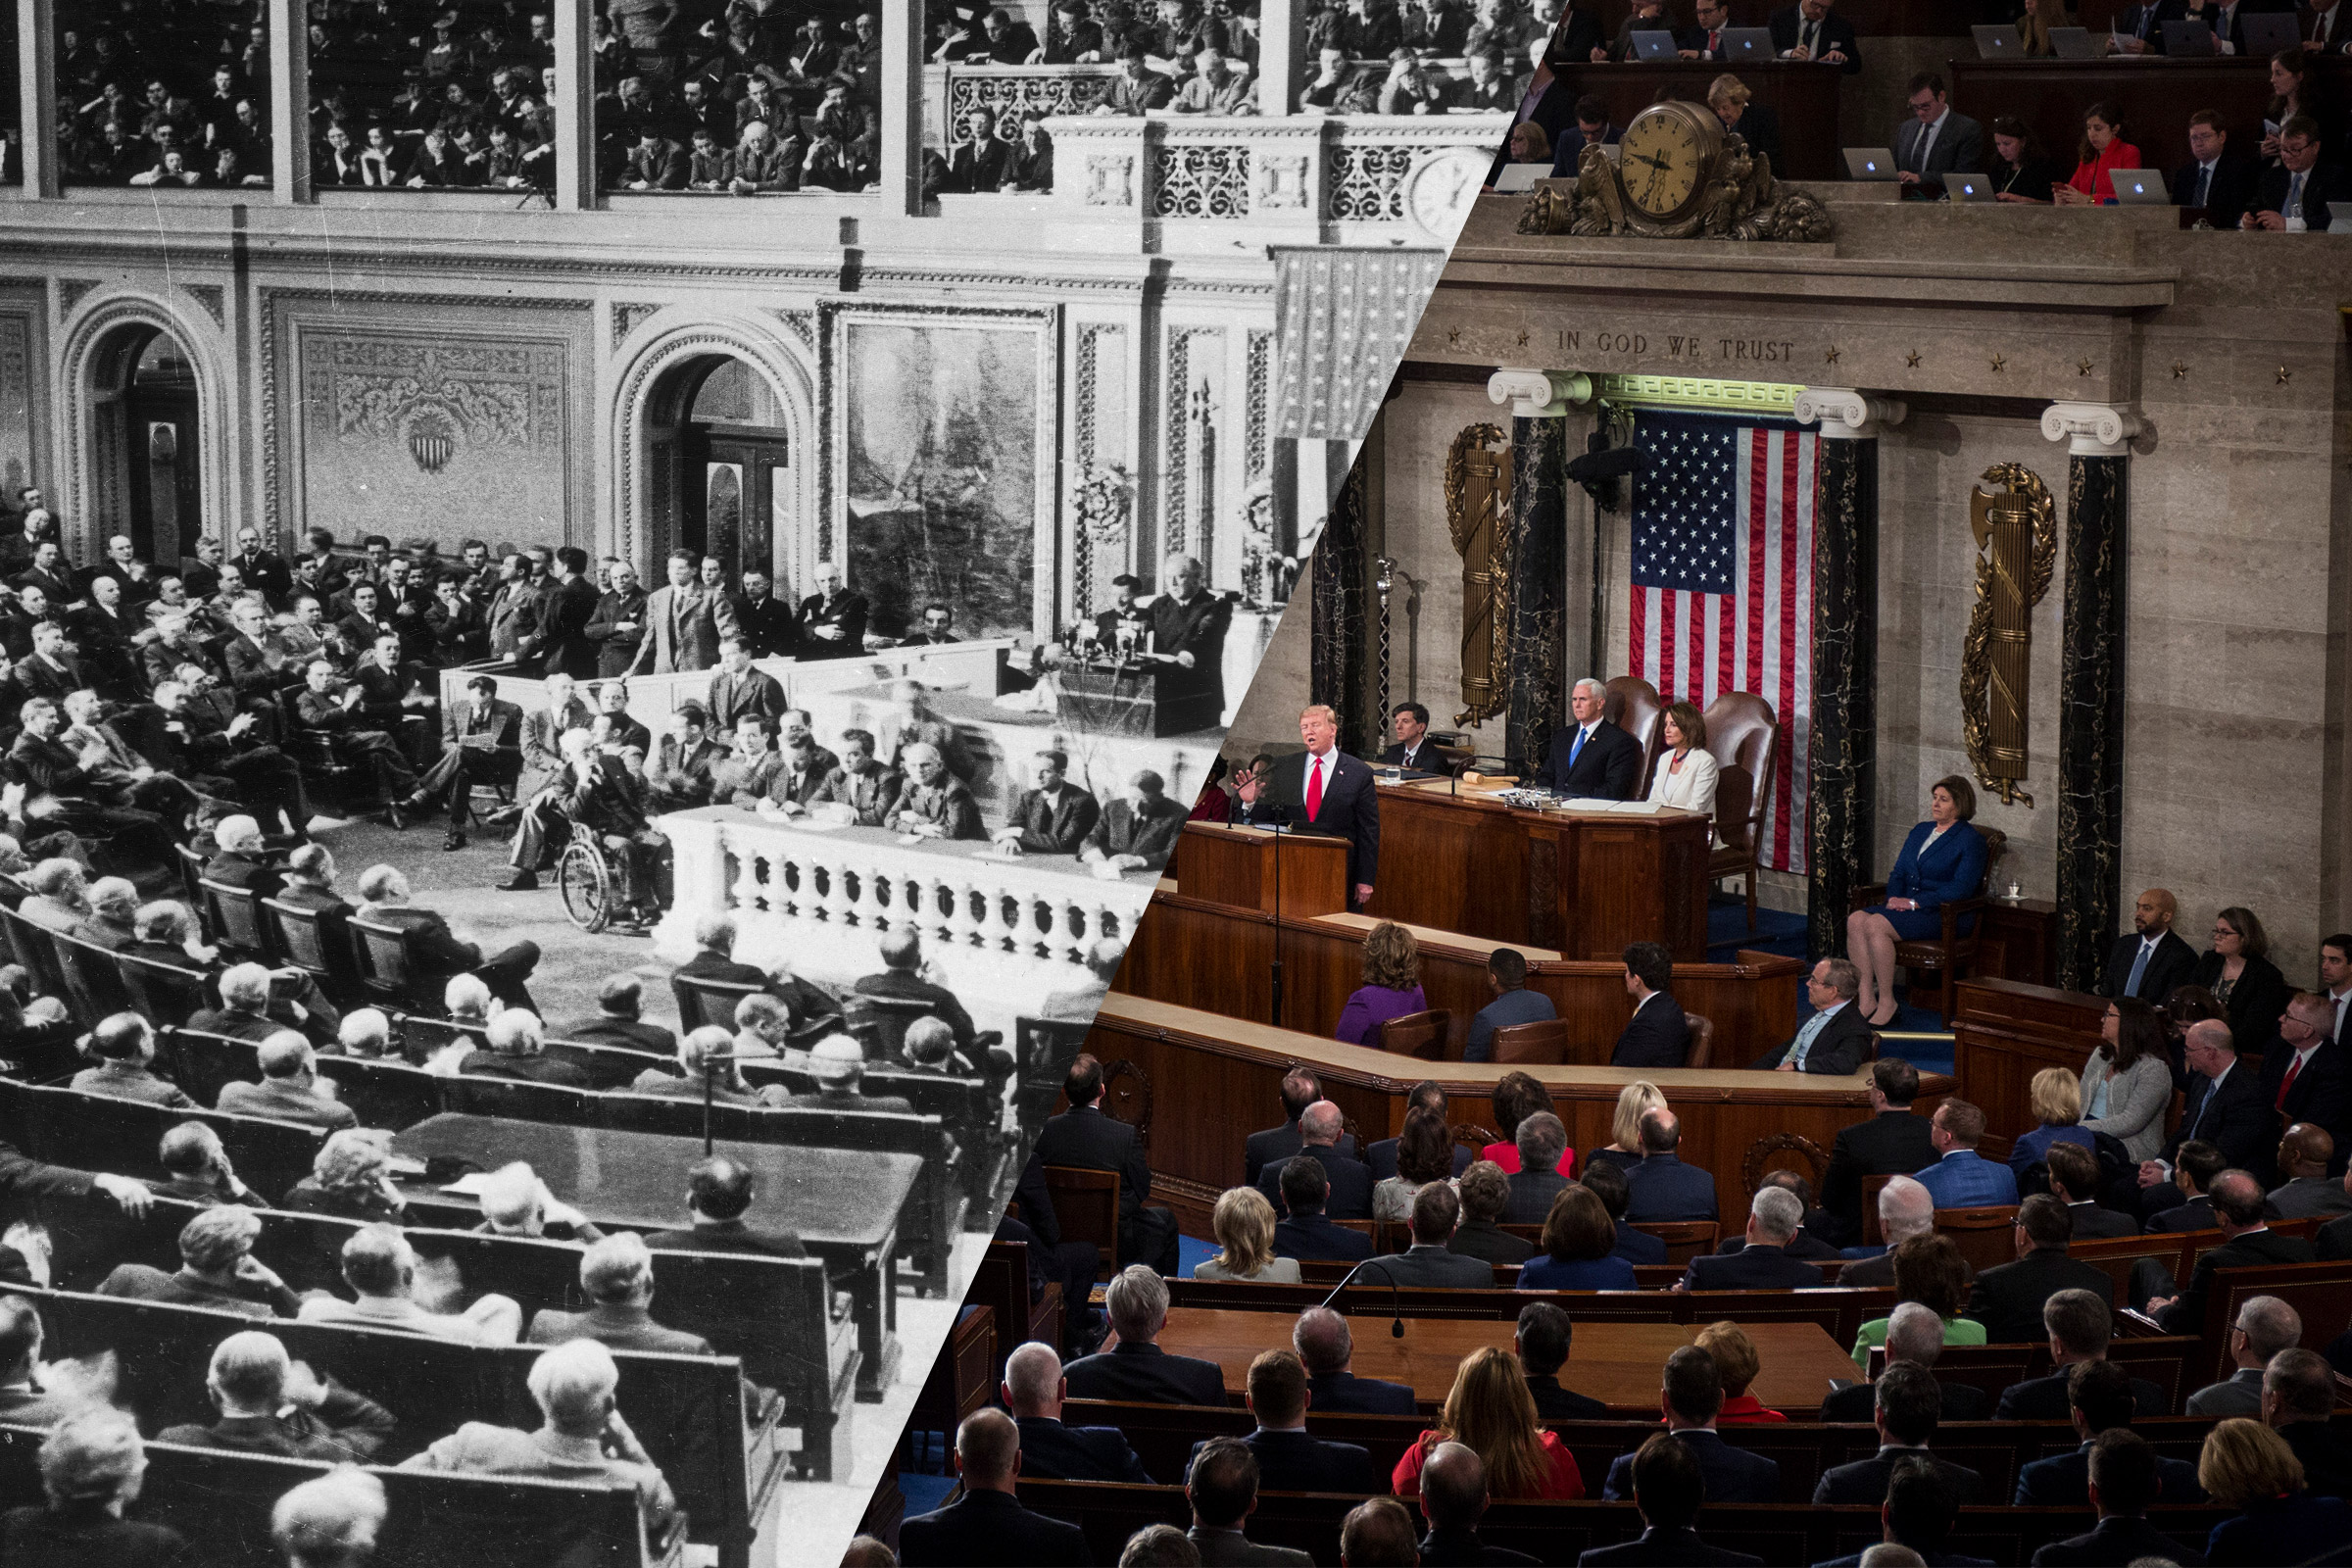 President Franklin D. Roosevelt addressing congress, Dec. 8, 1941; President Donald Trump delivers the State of the Union address, Feb. 5, 2019